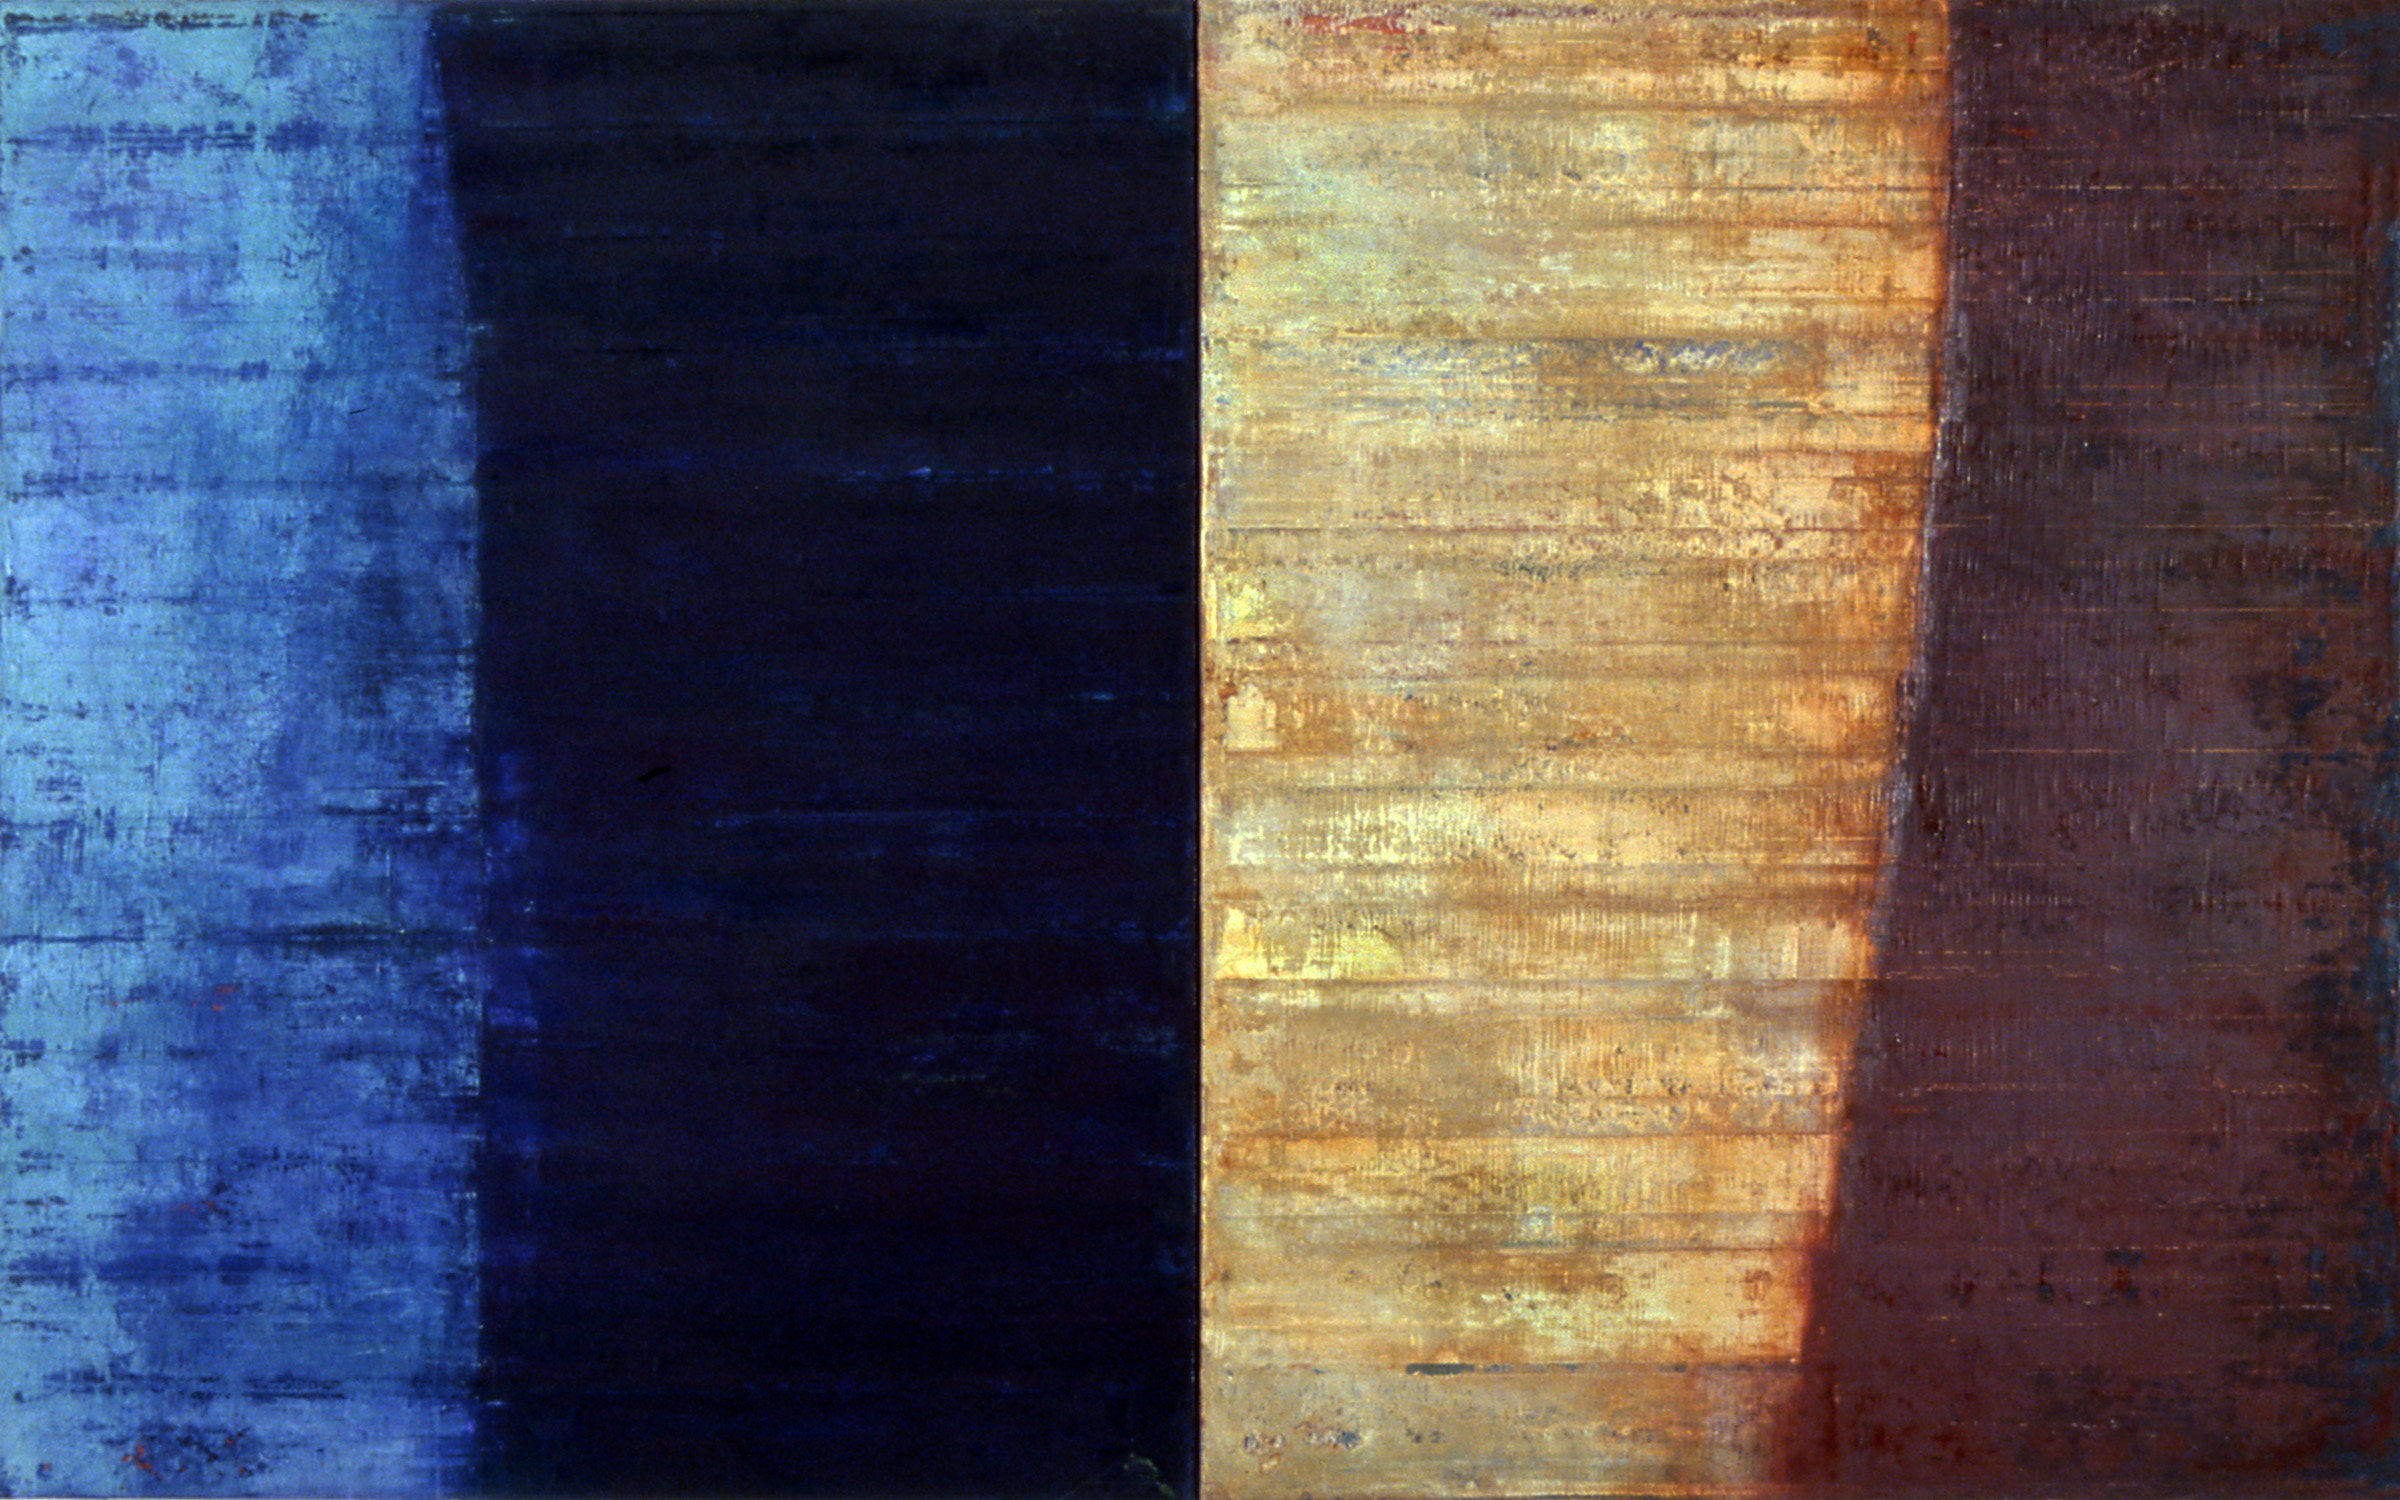 Linea Terminale: 4.07, 2007, Oil on linen over panels, 20 x 36 inches.